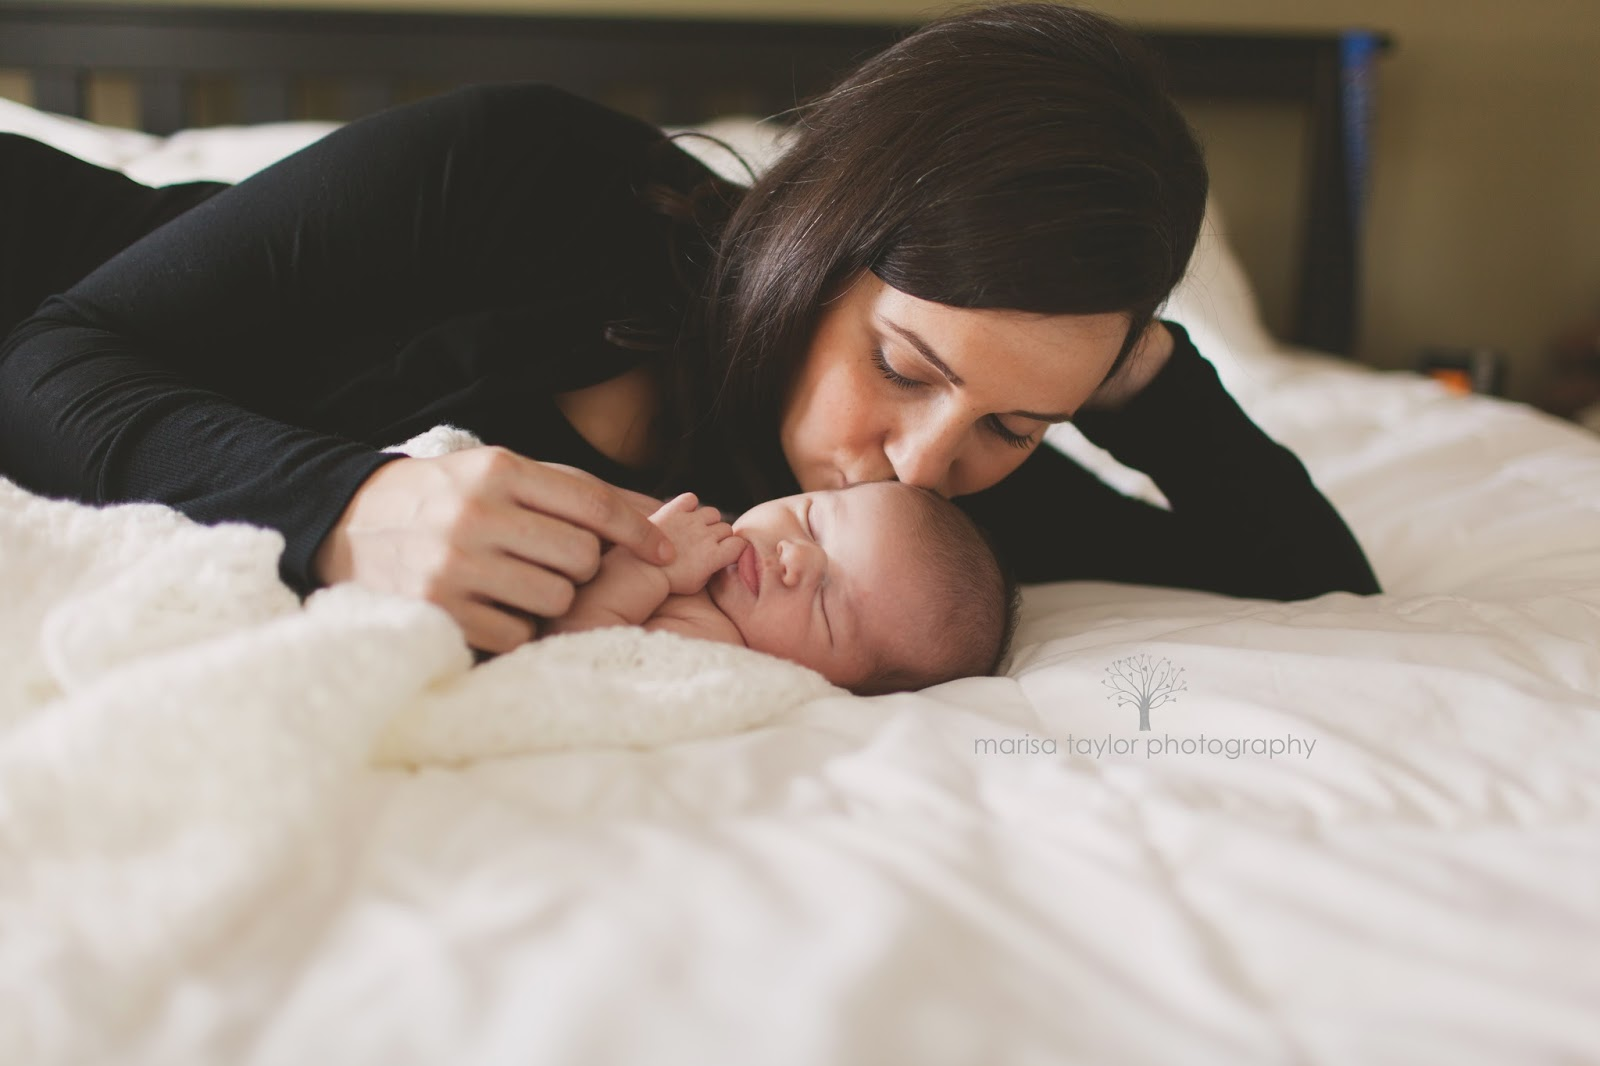 marisa taylor photography, pennsylvania newborn photographer, pennsylvania family photographer, delaware family photography